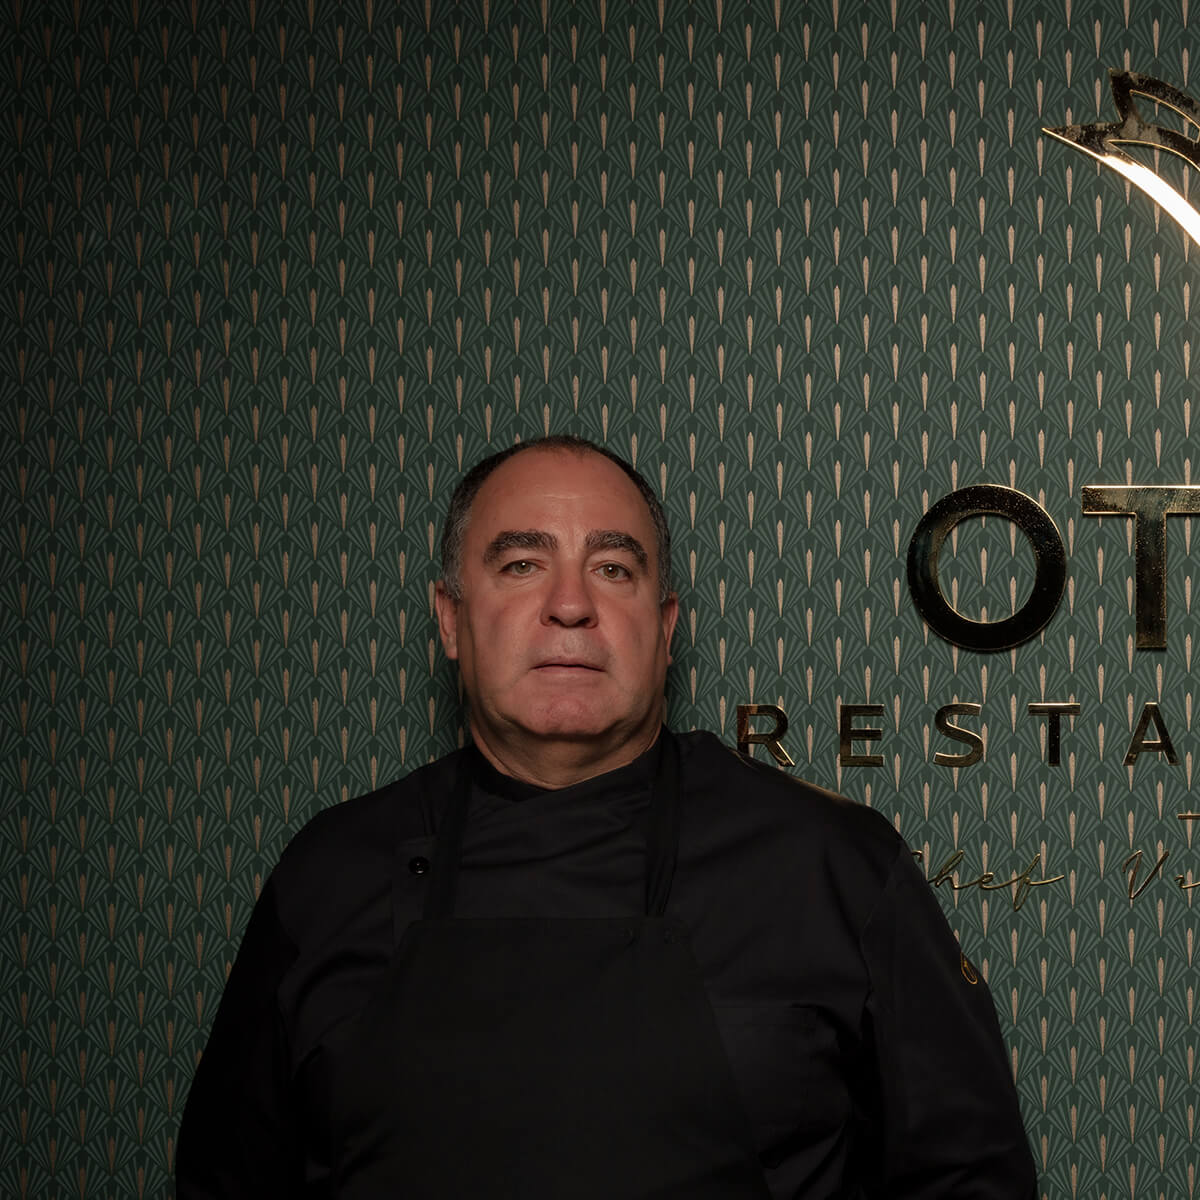 """Vitor Sobral  At 53 years old, Vítor Sobral's journey is mixed with the history of Portuguese gastronomy of the last three decades. In 1999, he was honored Chef of the Year by the Portuguese Academy of Gastronomy, and in 2006, he received the degree of Commander of the Order of Infante D. Henrique from the hands of then President Jorge Sampaio, for the work of dissemination and promotion he did of Portugal in the world . He is the most present Portuguese chef in the world, with restaurants on two continents. After its first """"Esquina"""", Tasca da Esquina in Lisbon (2009), multiplied Esquinas in Campo de Ourique - Peixaria da Esquina (2016) and Padaria da Esquina (2018), now existing in two more neighborhoods (Alvalade and Restelo ). In between, he sowed Esquinas in Brazil, where he gained a lot of fame, first with Tasca da Esquina de S. Paulo (2011), and then with two Bakeries of Esquina, in addition to Tasquinha da Esquina, at Shopping Morumbi. He adds projects, consultancies and worldviews whenever he considers that the quality and art of national cuisine can go hand in hand"""